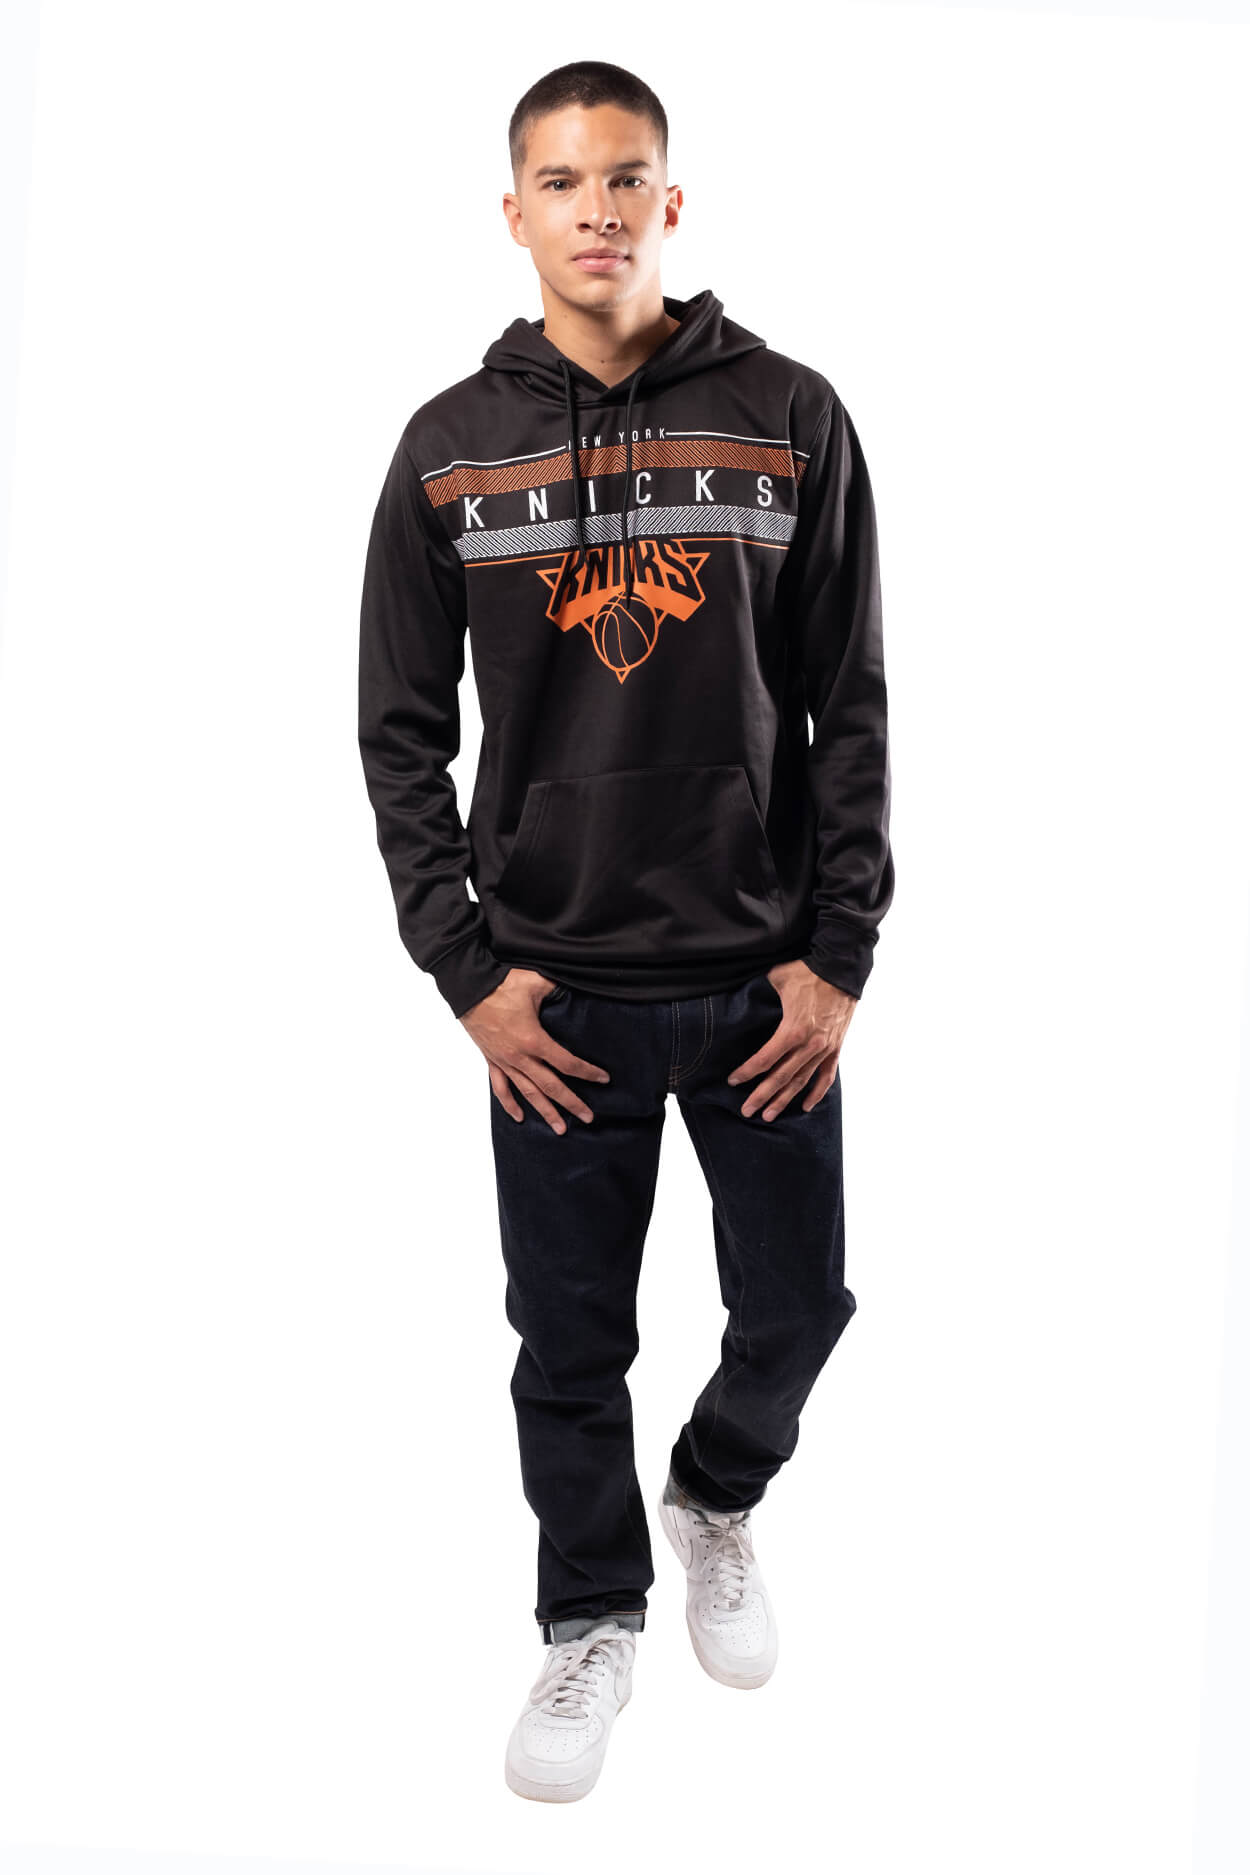 NBA New York Knicks Men's Fleece Hoodie Midtown|New York Knicks